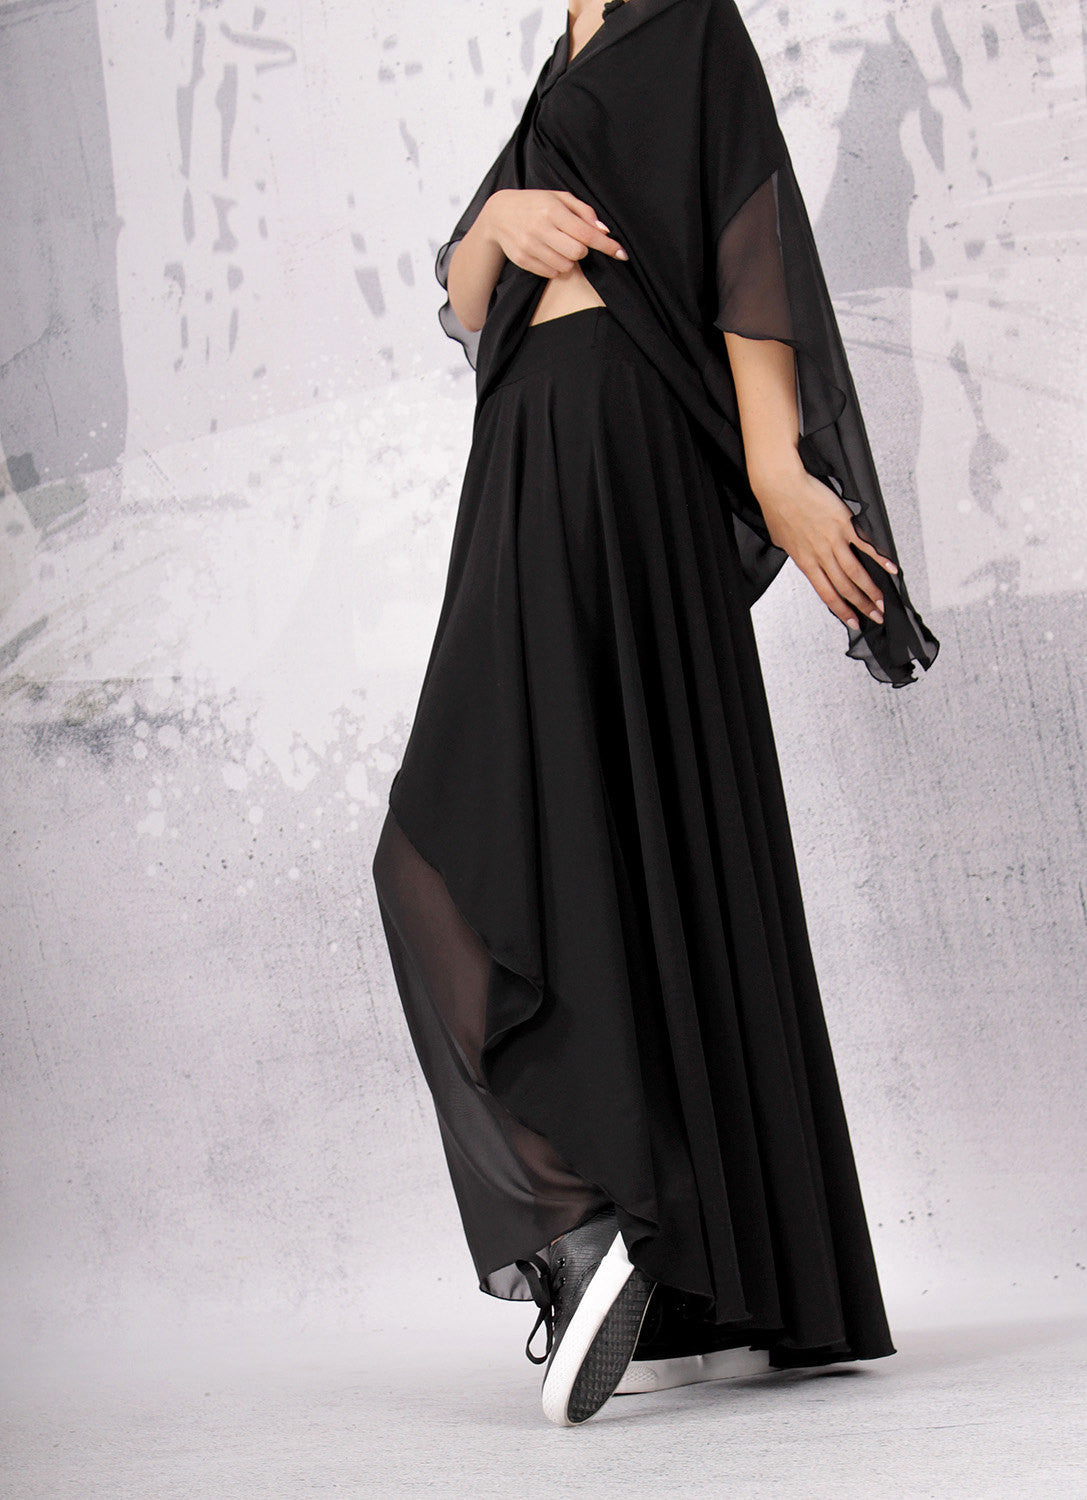 Skirt,Black long skirt with two layers,maxi skirt,UM072VLCH